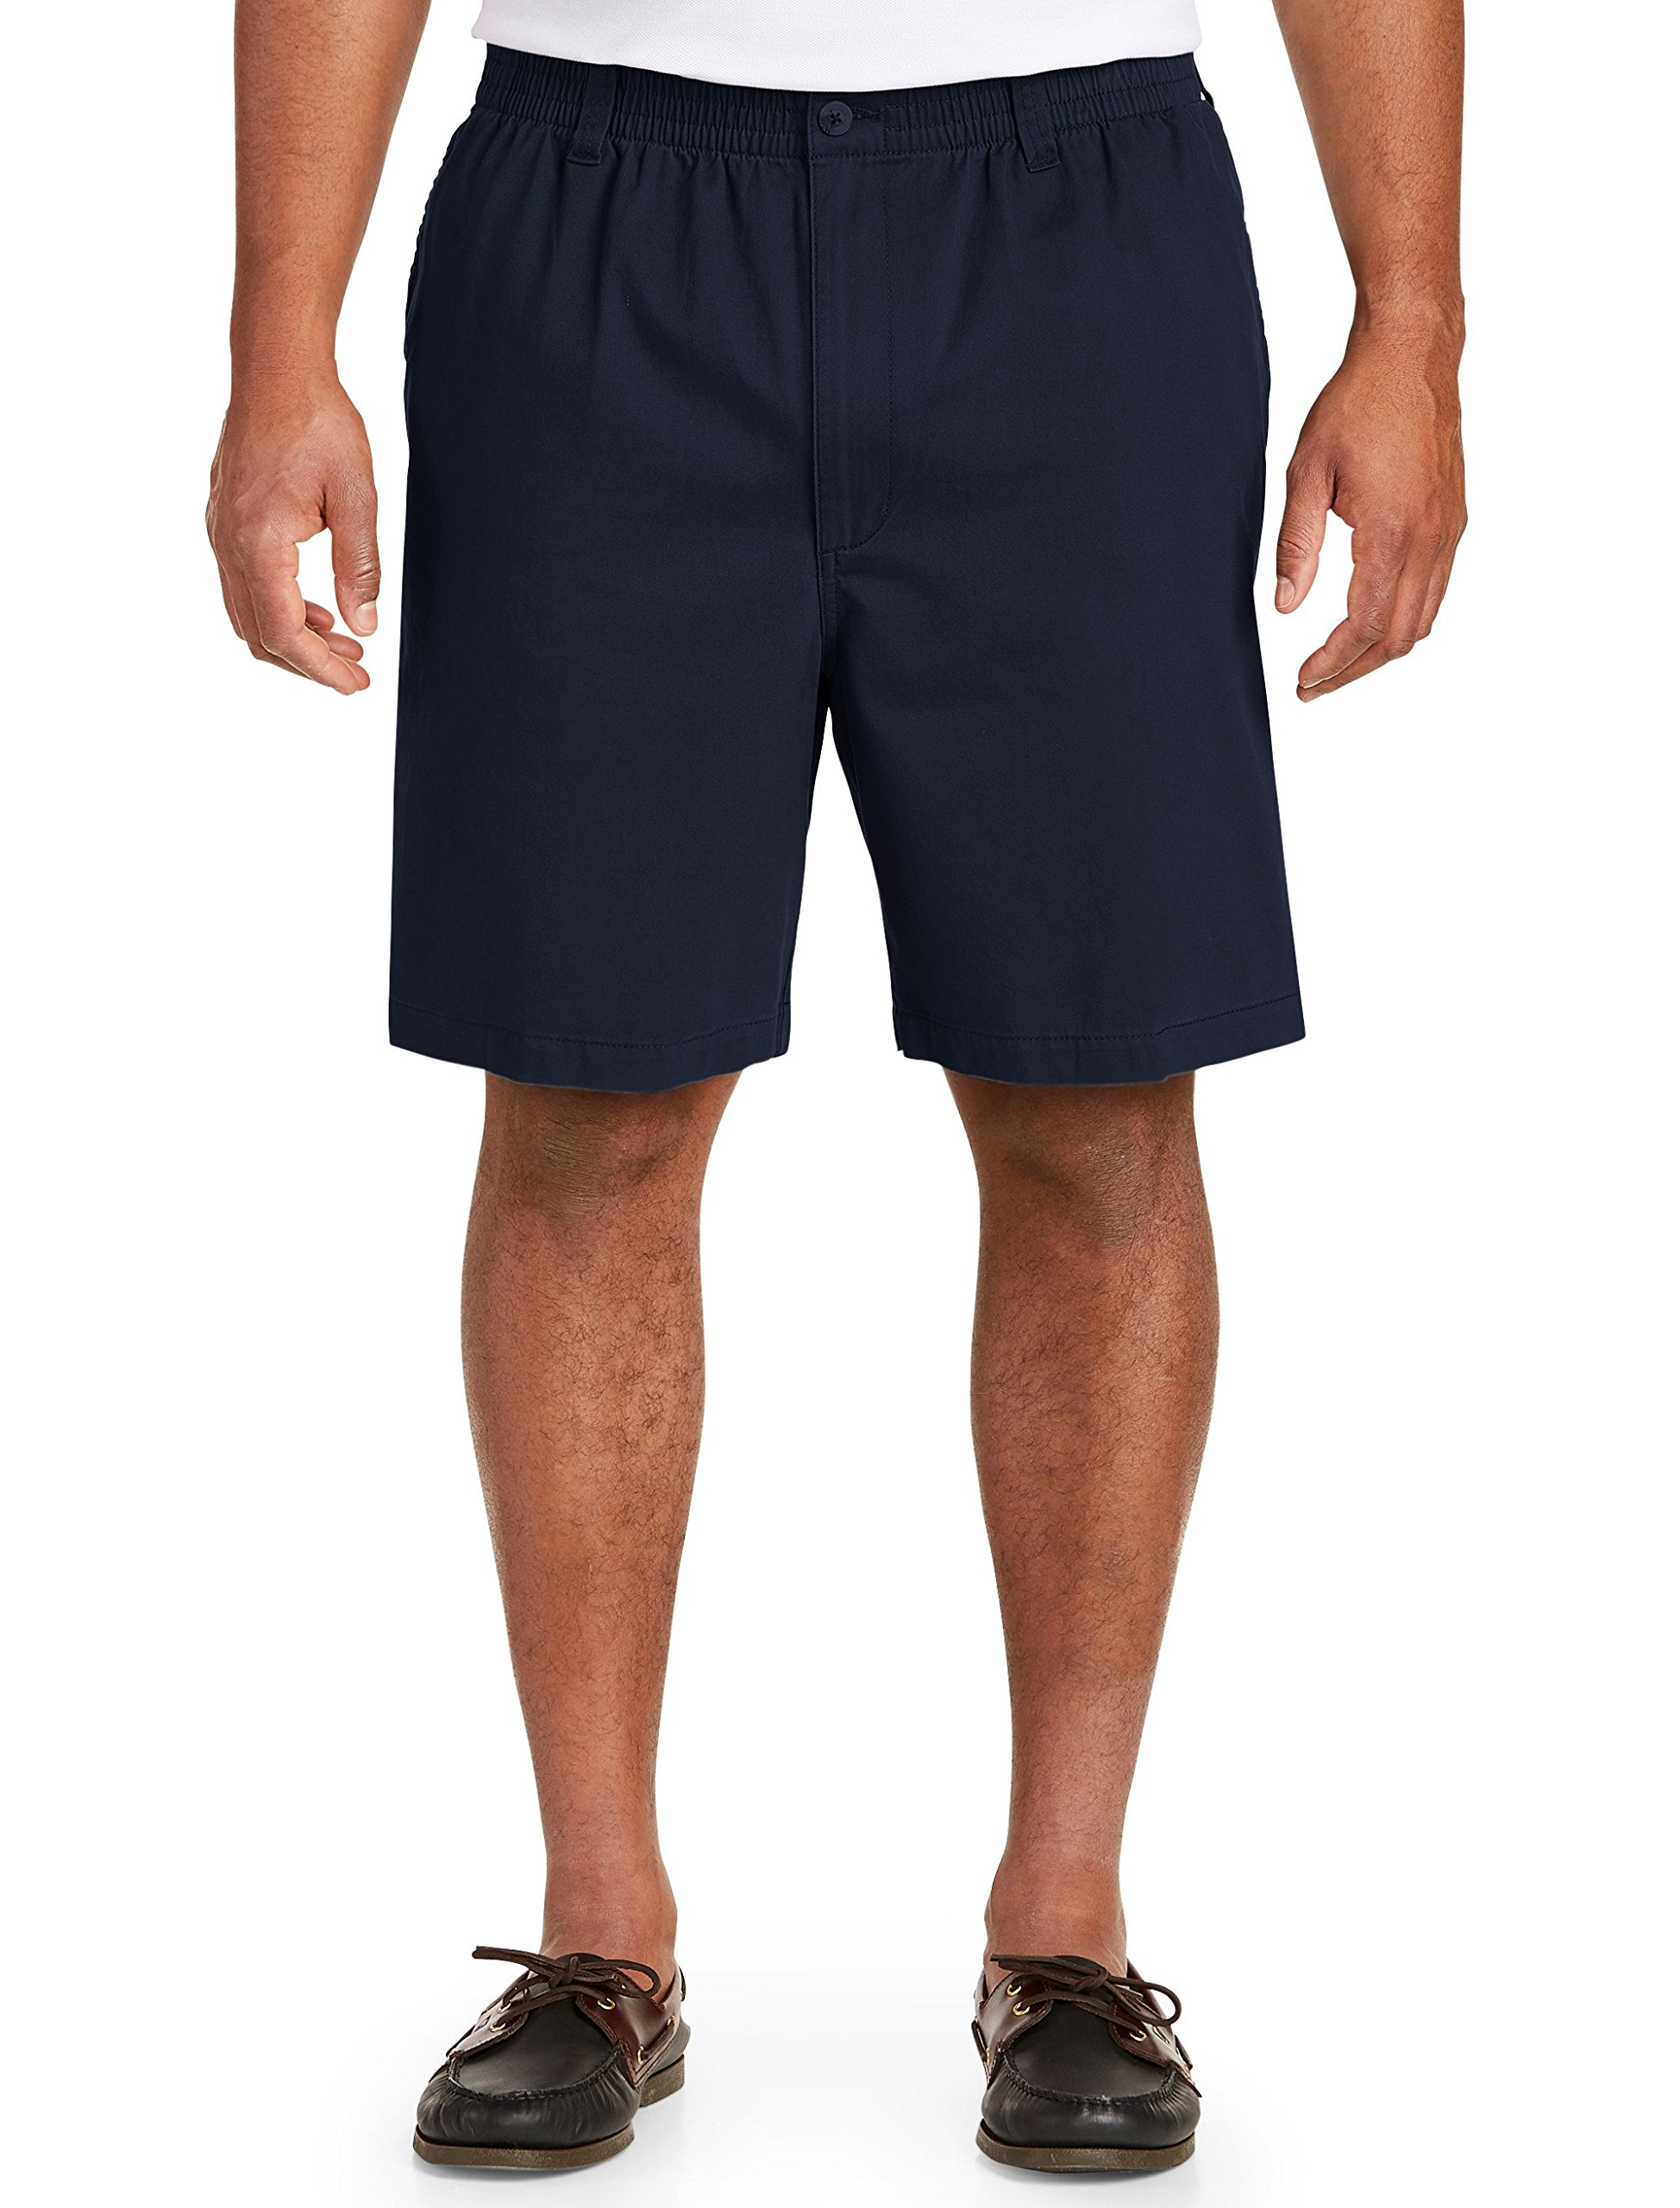 Harbor Bay by DXL Big and Tall Elastic-Waist Twill Shorts-Updated Fit